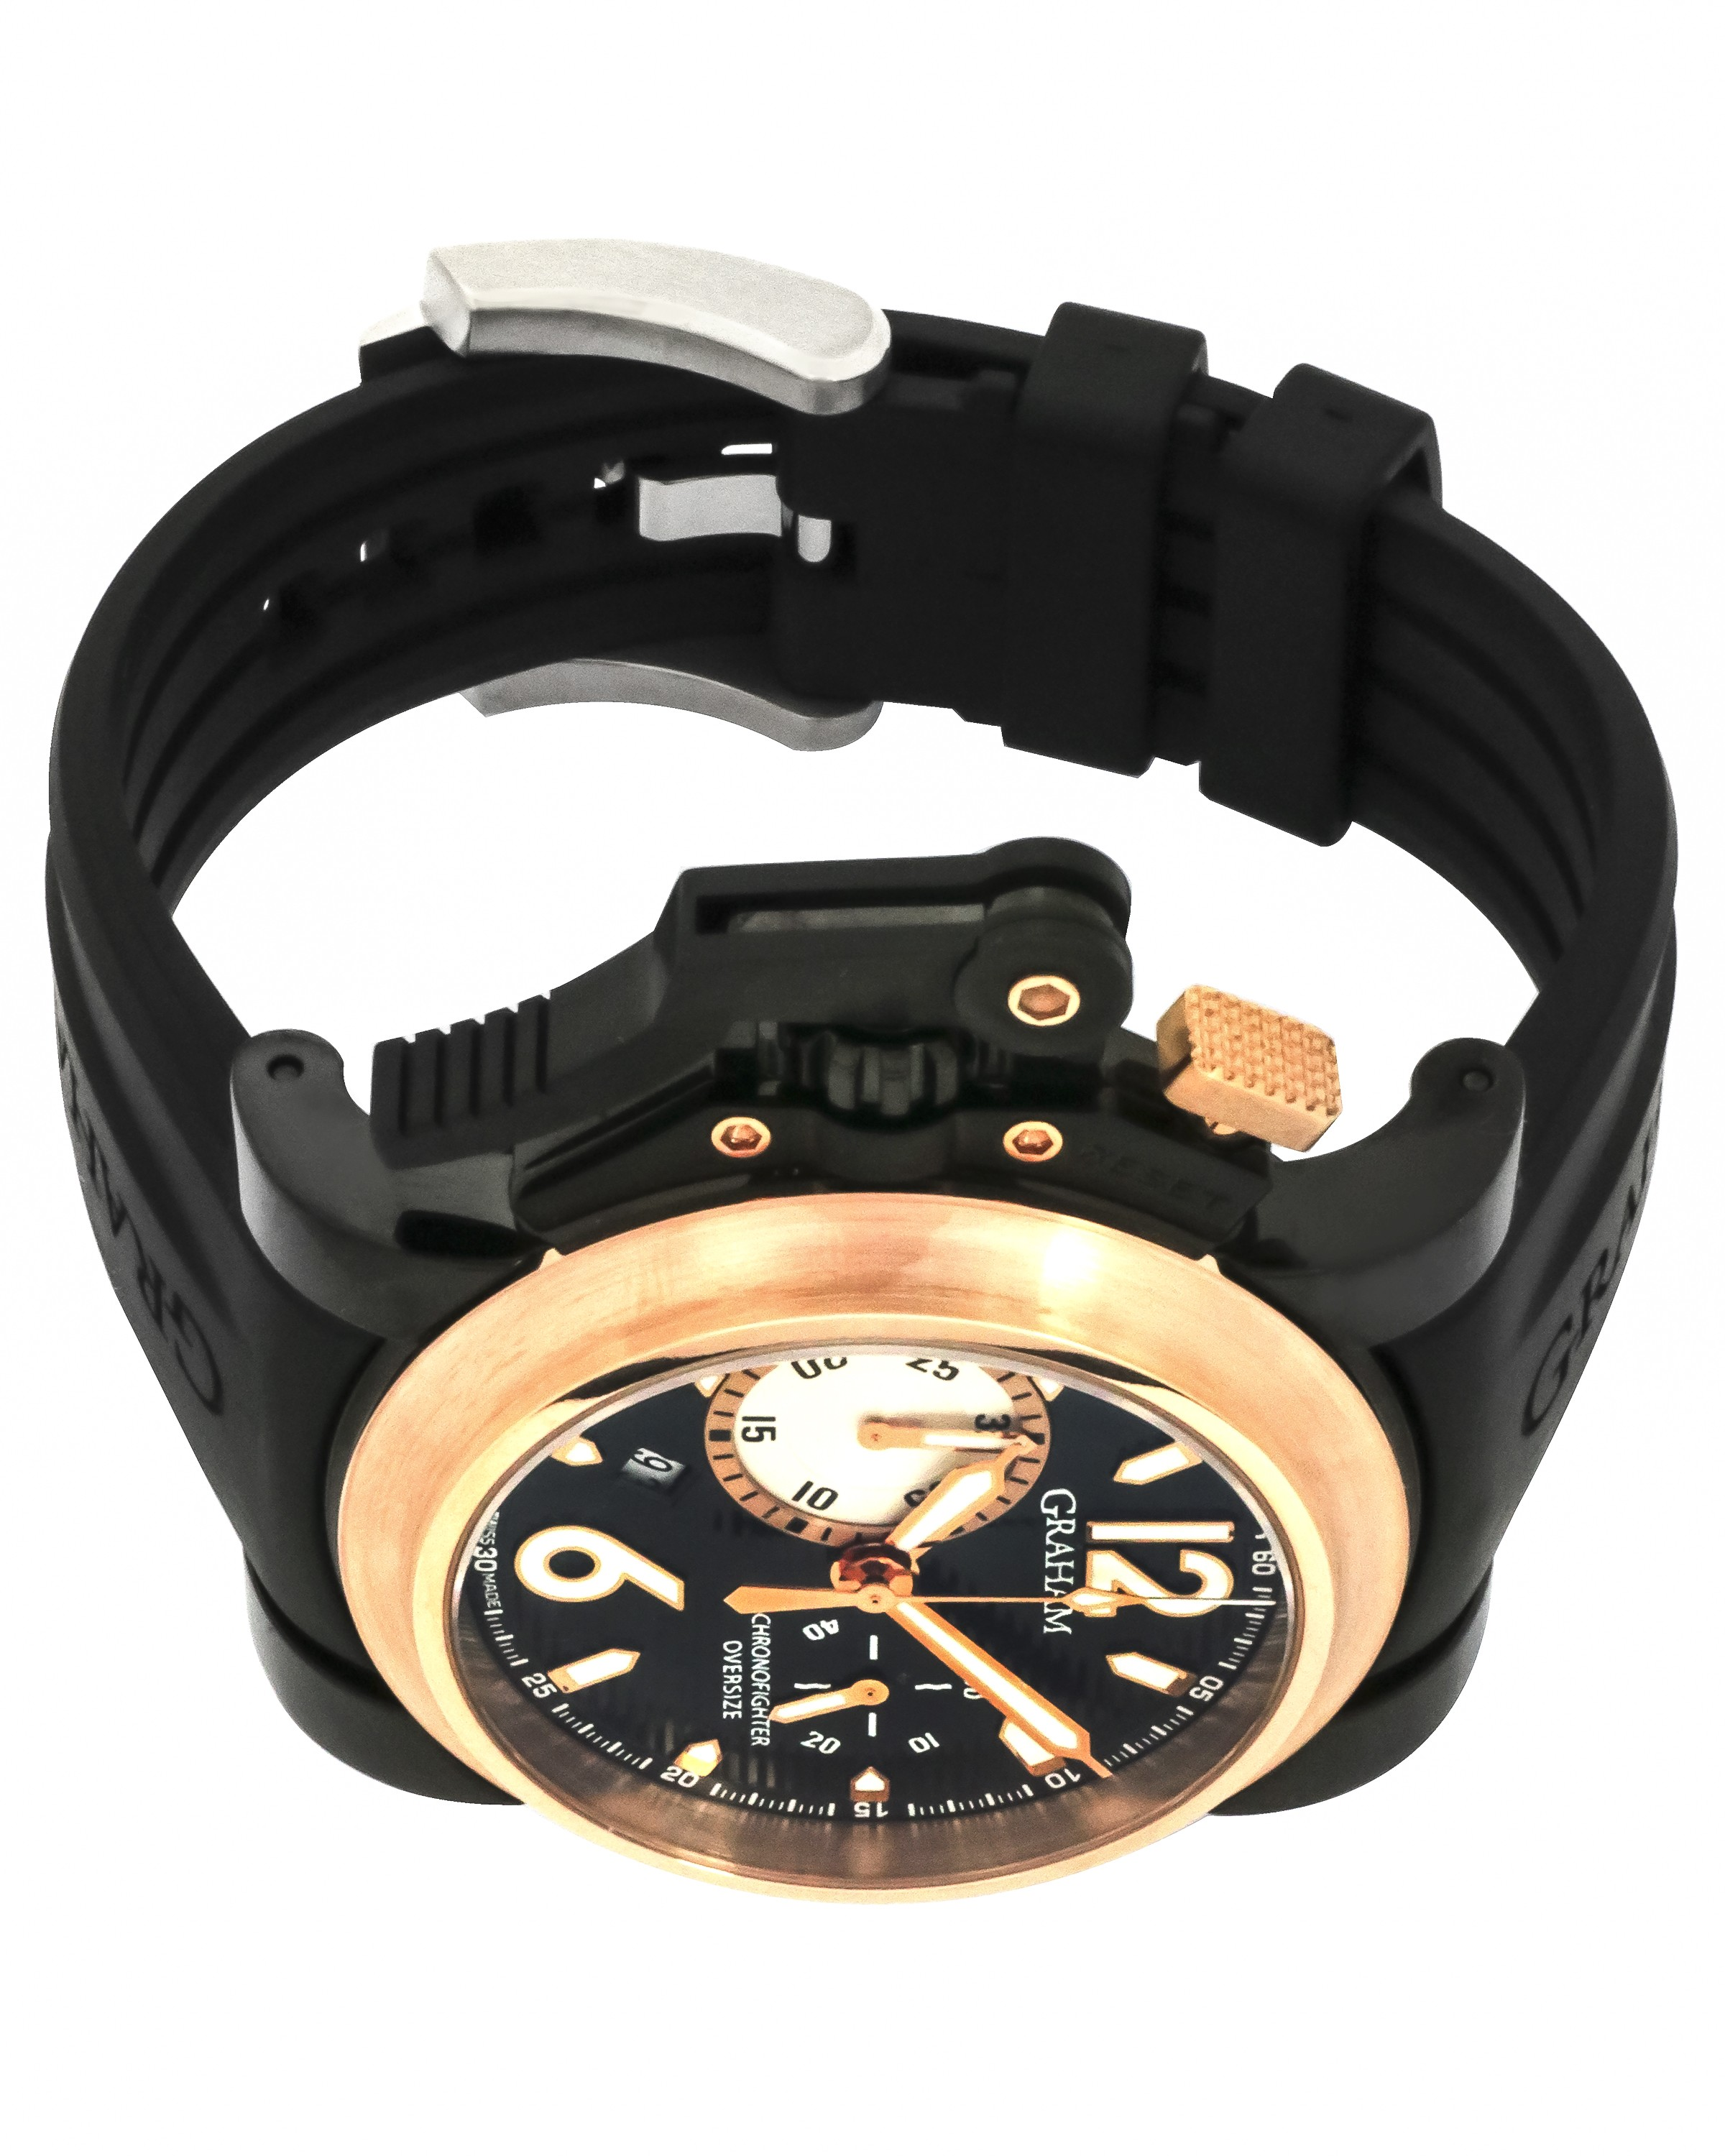 Graham 18k Gold And PVD Chronofighter Oversize Black Label LE Chronograph Men's Watch 2OVBZ.B10A